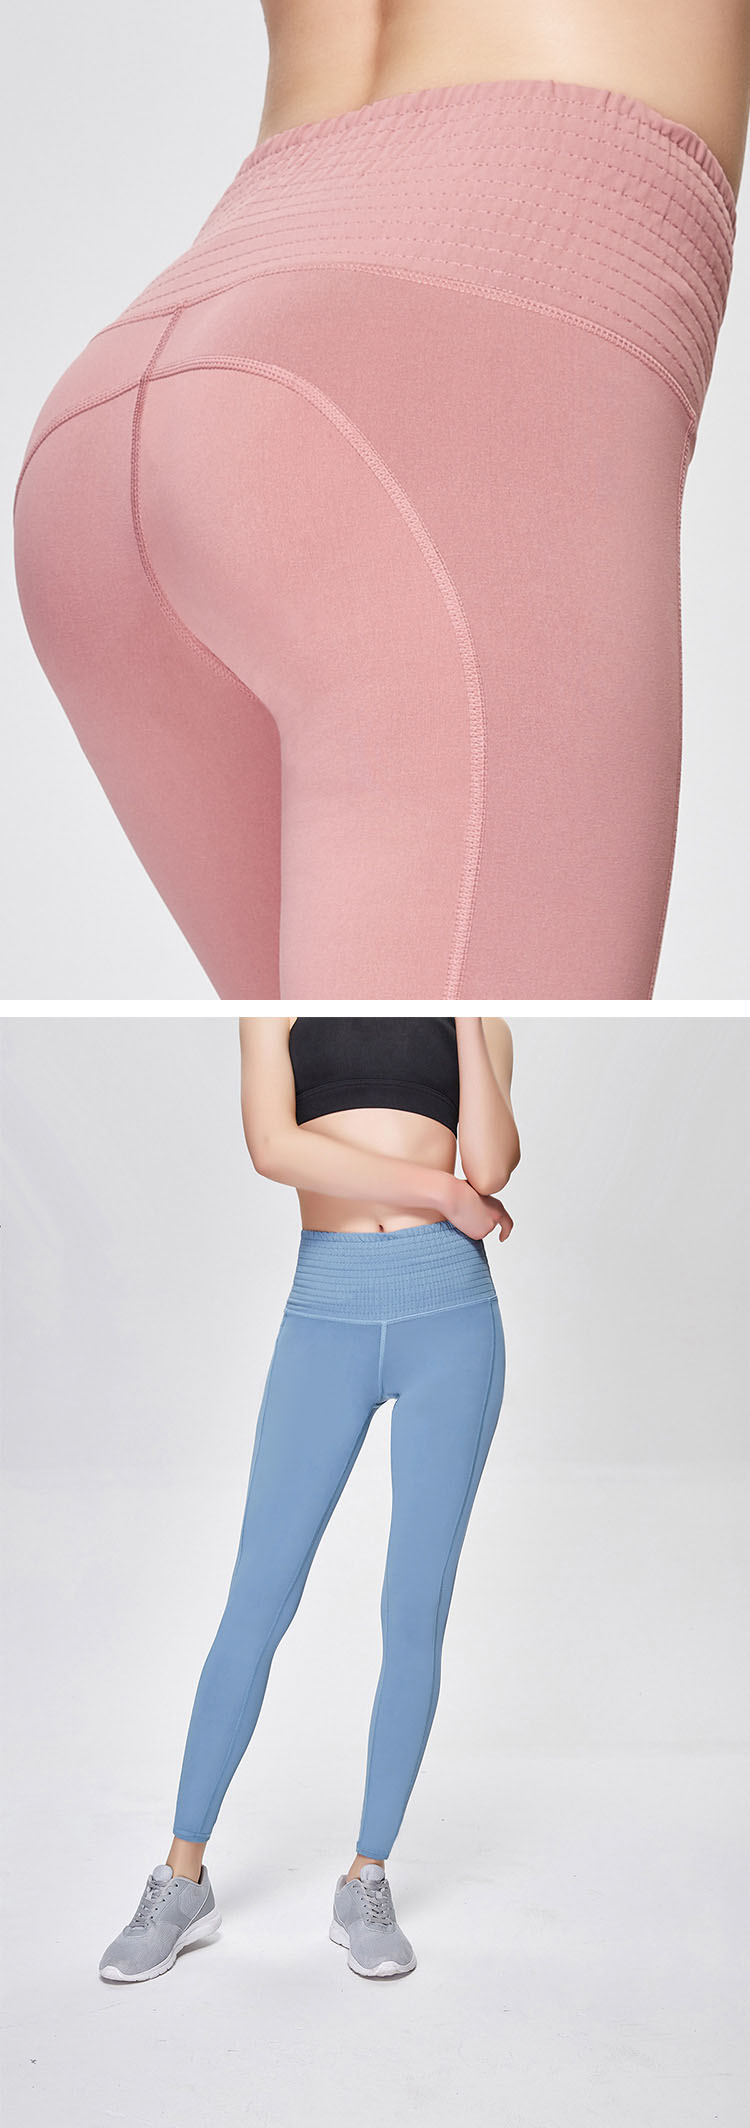 Tall yoga pants,leisure and energetic, windproof and breathable sunscreen fabric